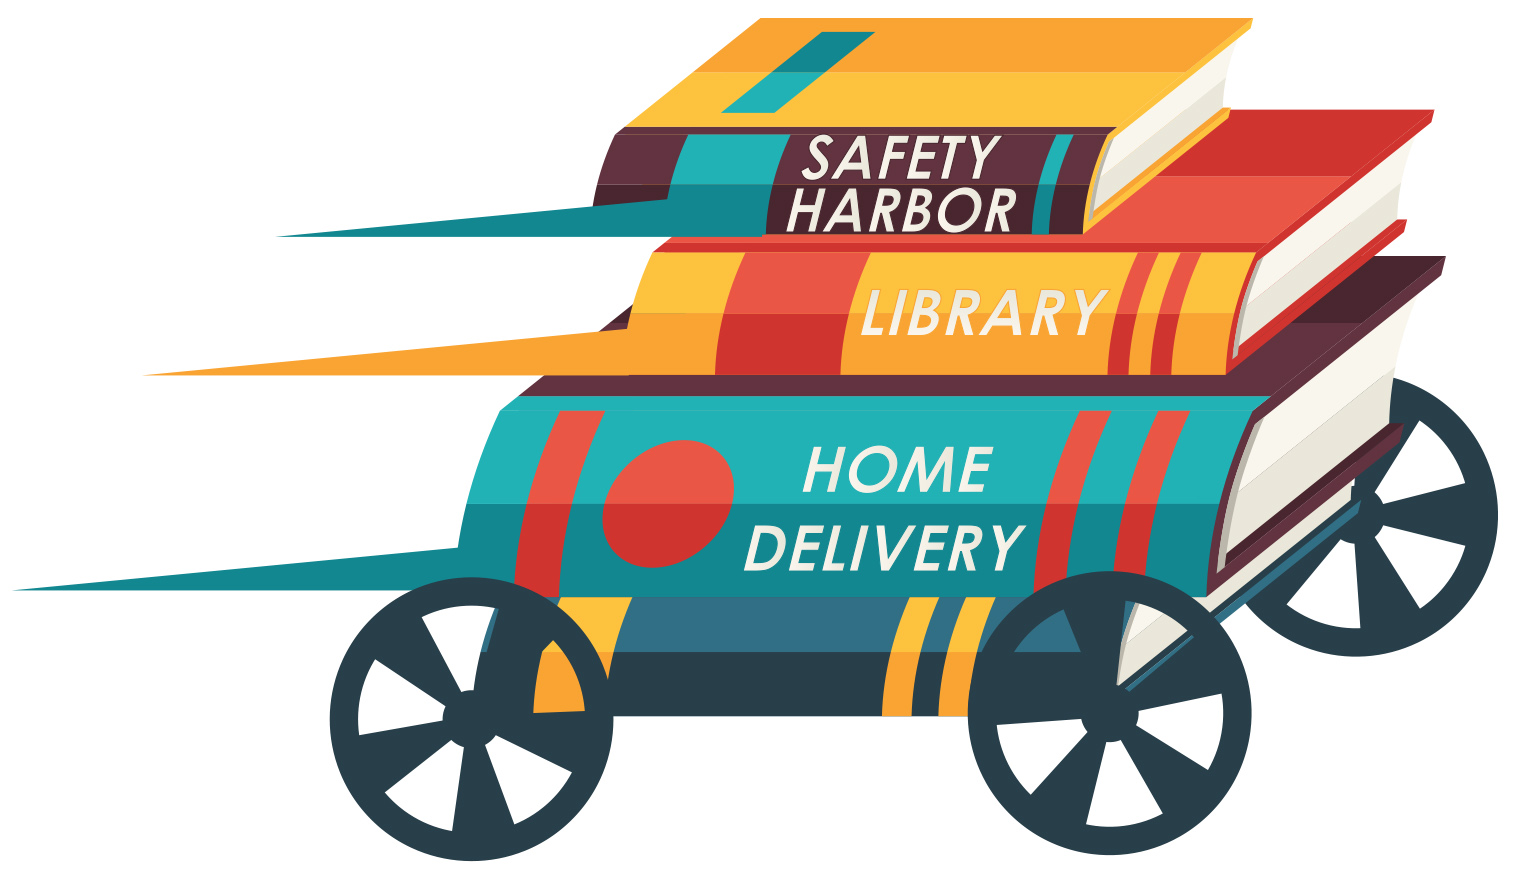 Safety_Harbor_Home_Delivery.jpg